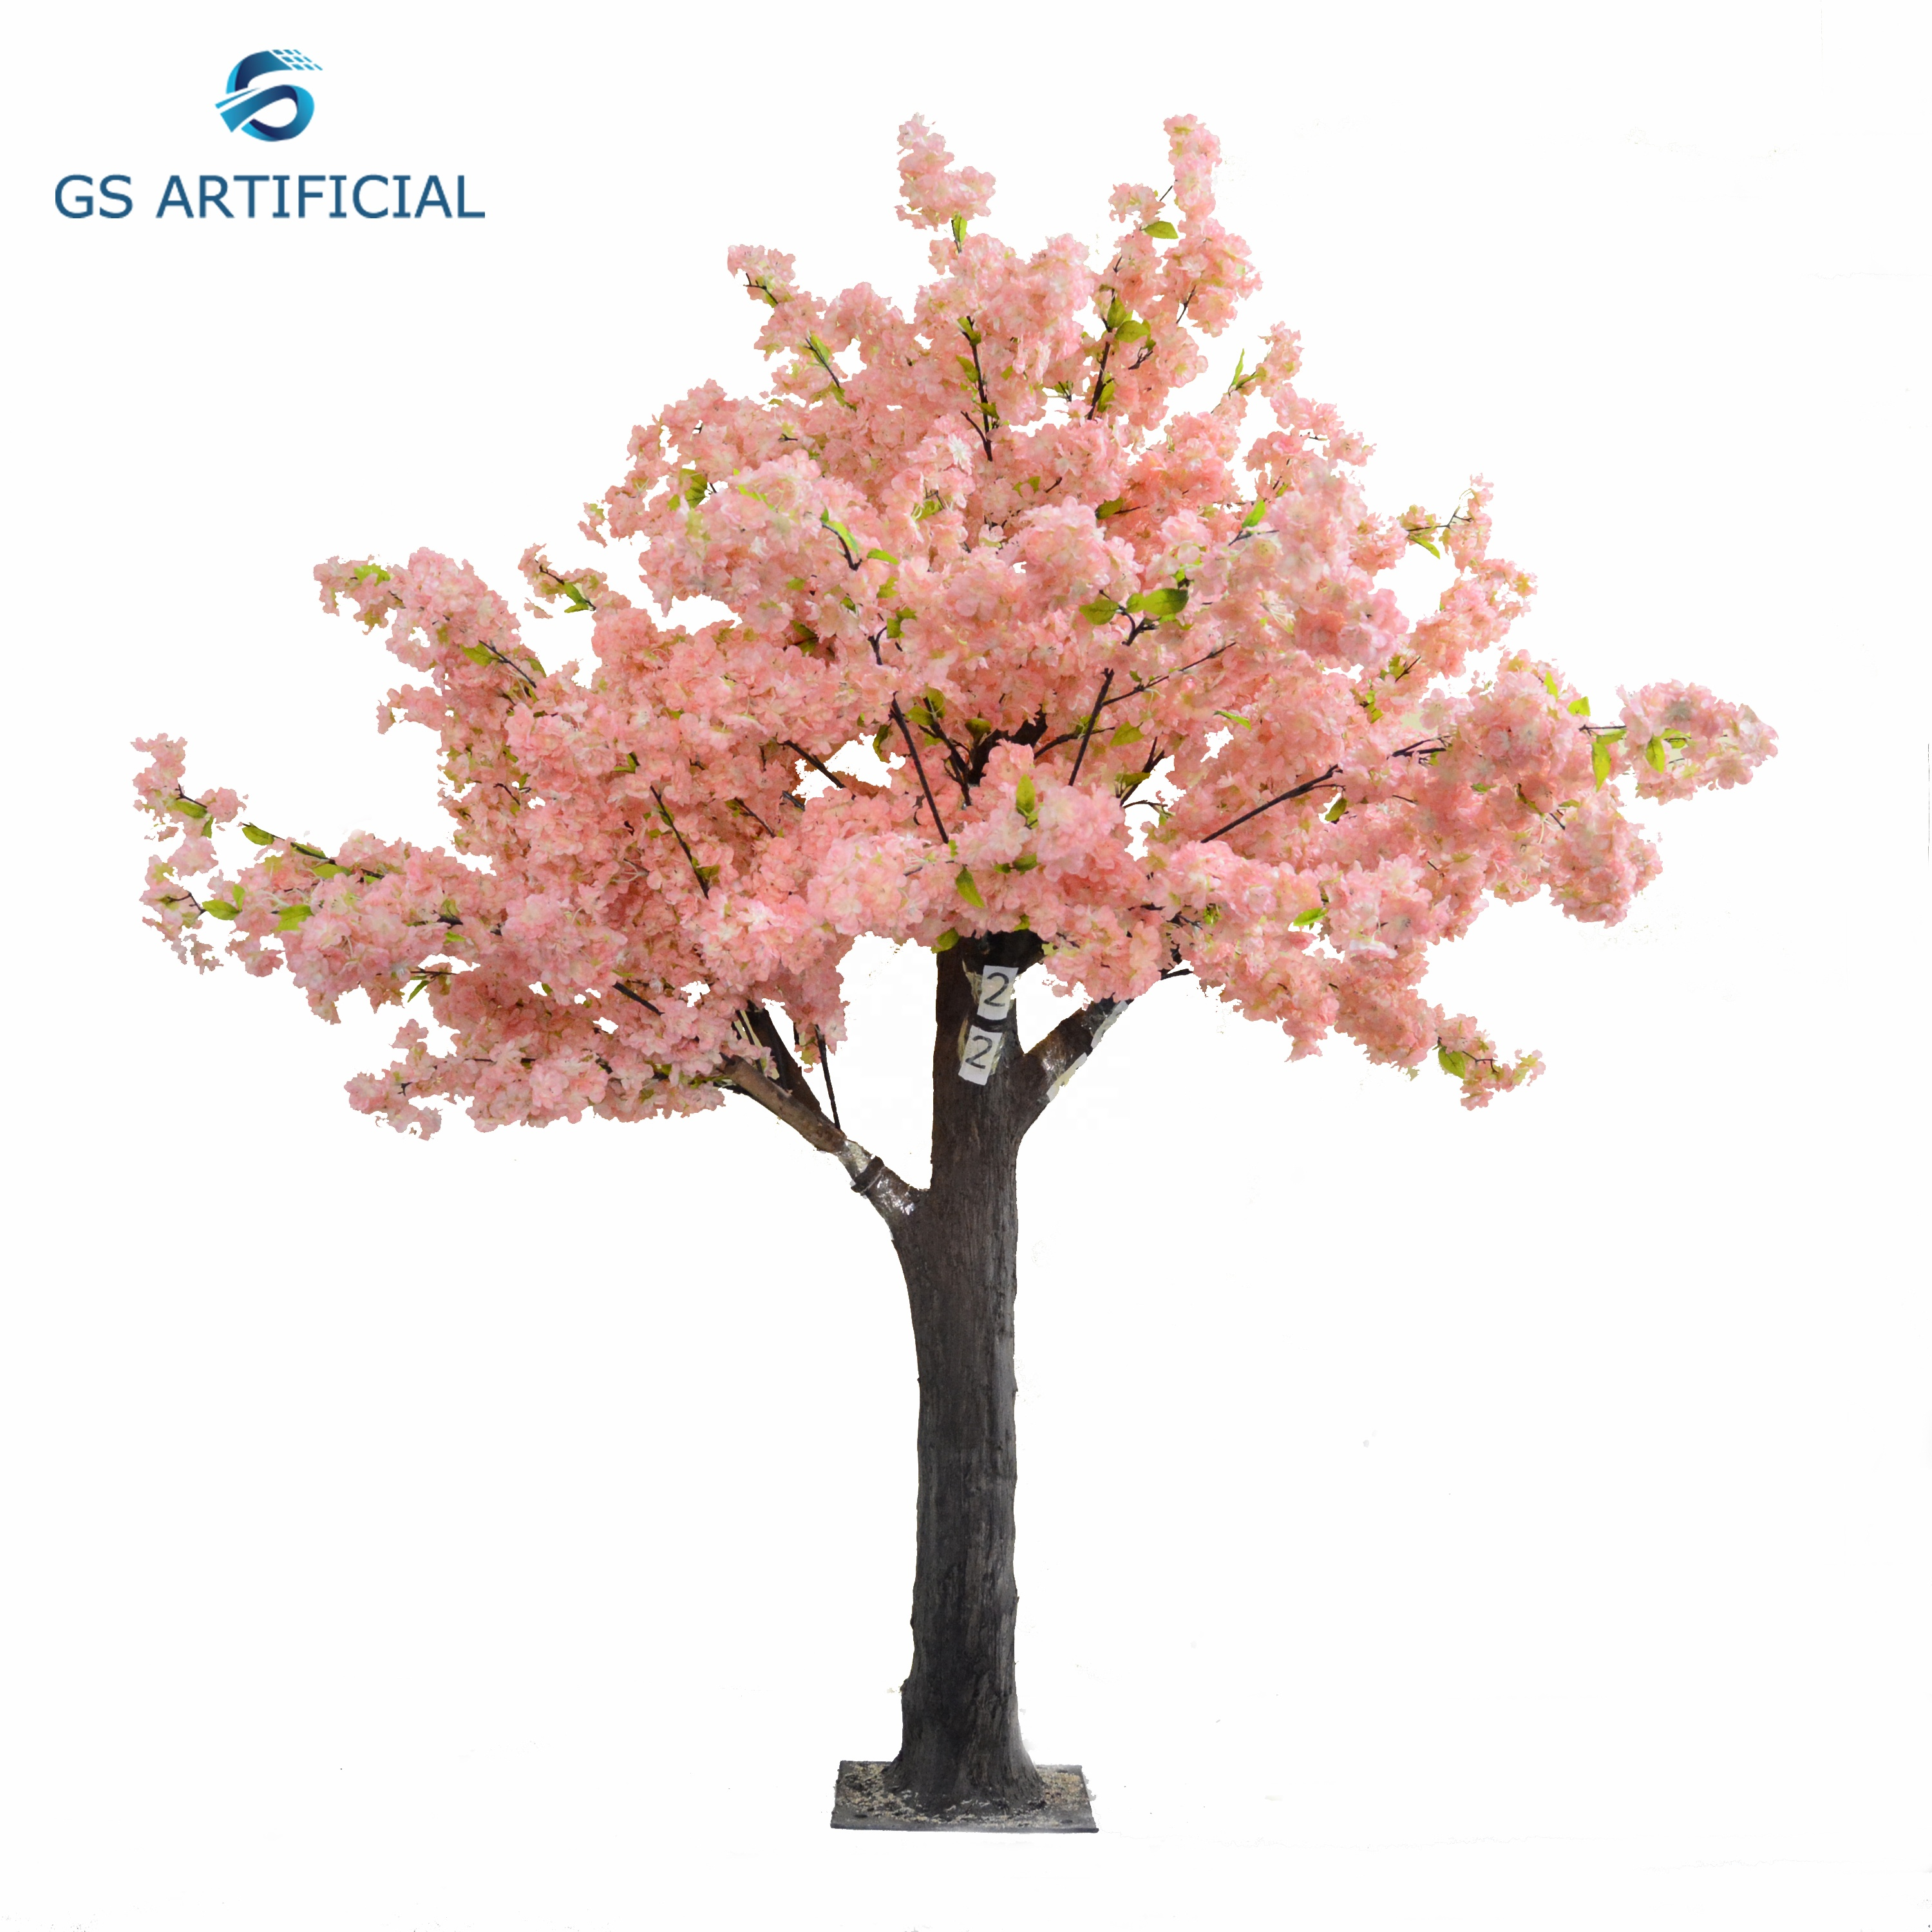 2m Sakura Tree For Wedding Decor Artificial Cherry Blossom Tree Pink  Centerpiece - Buy Centerpiece,Sakura Tree,2m Cherry Blossom Tree Product on  Alibaba.com